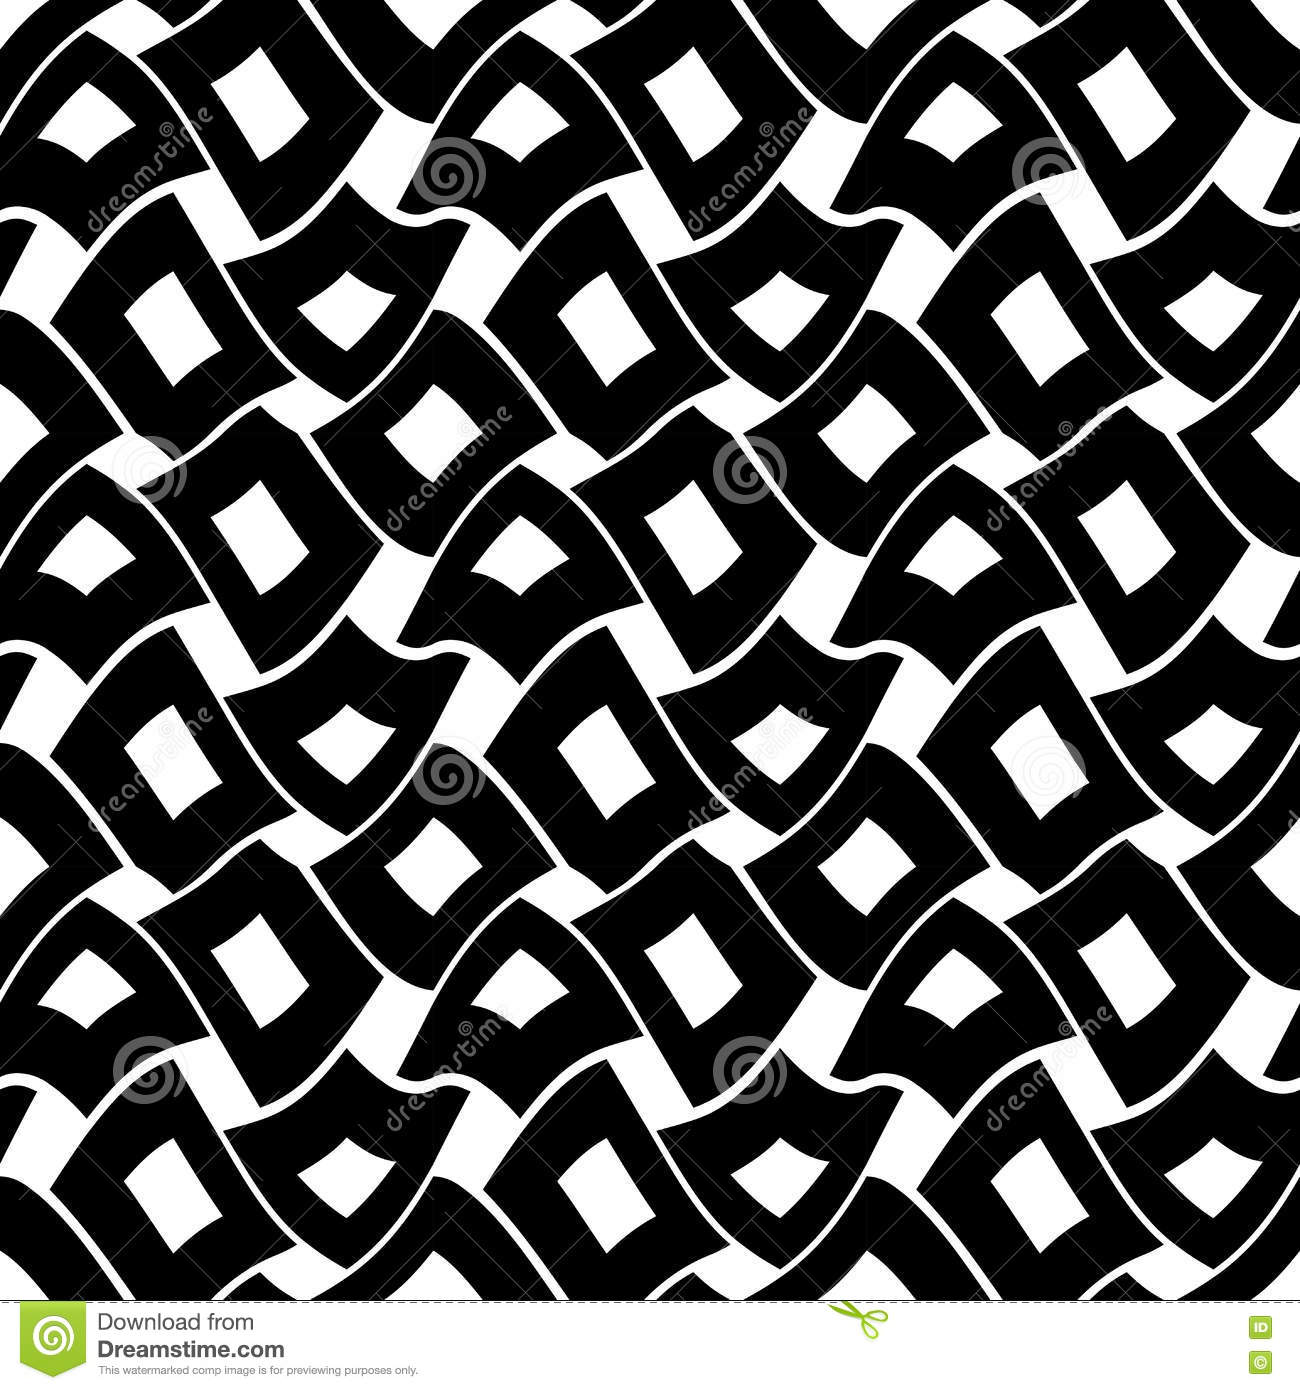 Black bed sheets pattern - Vector Modern Abstract Geometry Squares Pattern Black And White Seamless Geometric Background